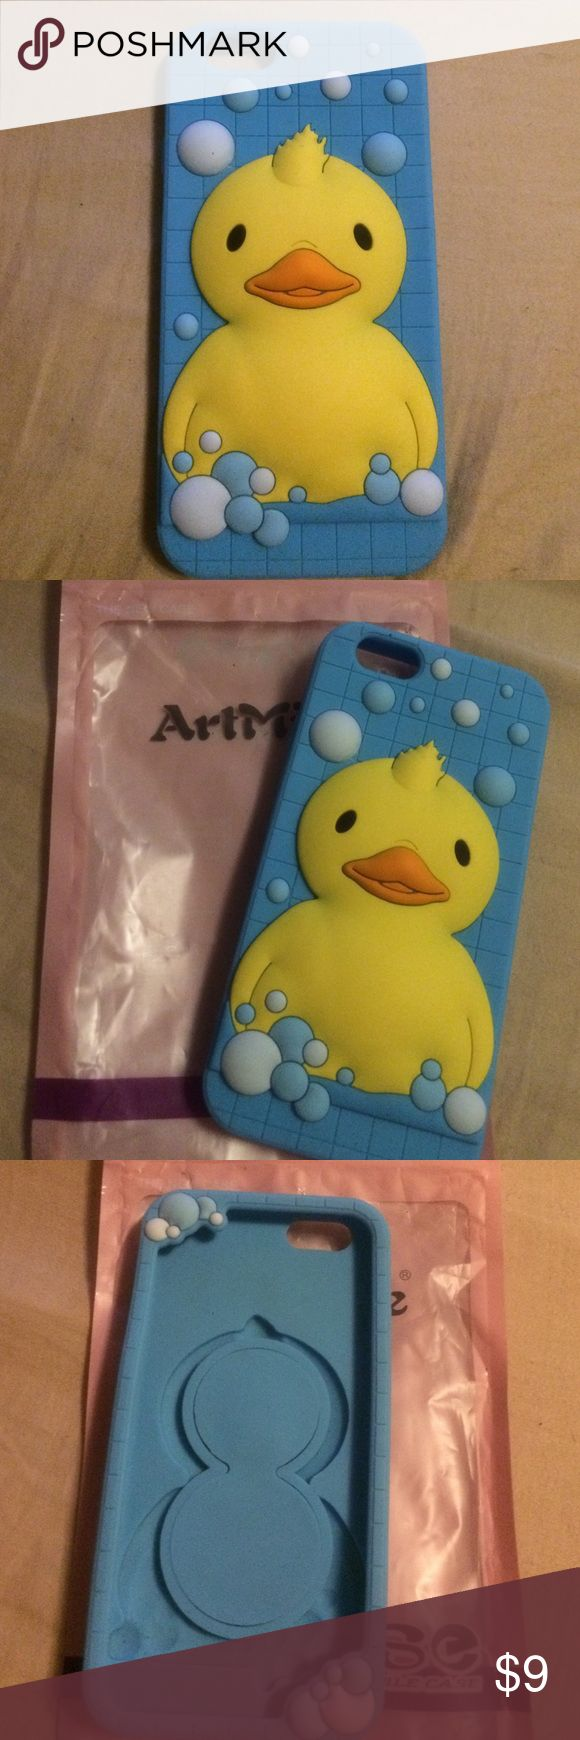 Quack Quack Duck Sound Phone Case – iPhone 6/6S Quack Quack Duck Sound Phone Case – iPhone 6/6S. Press and makes quack quack sound!! you can press it and pretend to you're  getting a call when an annoying person is talking to you!! Lol Accessories Phone Cases